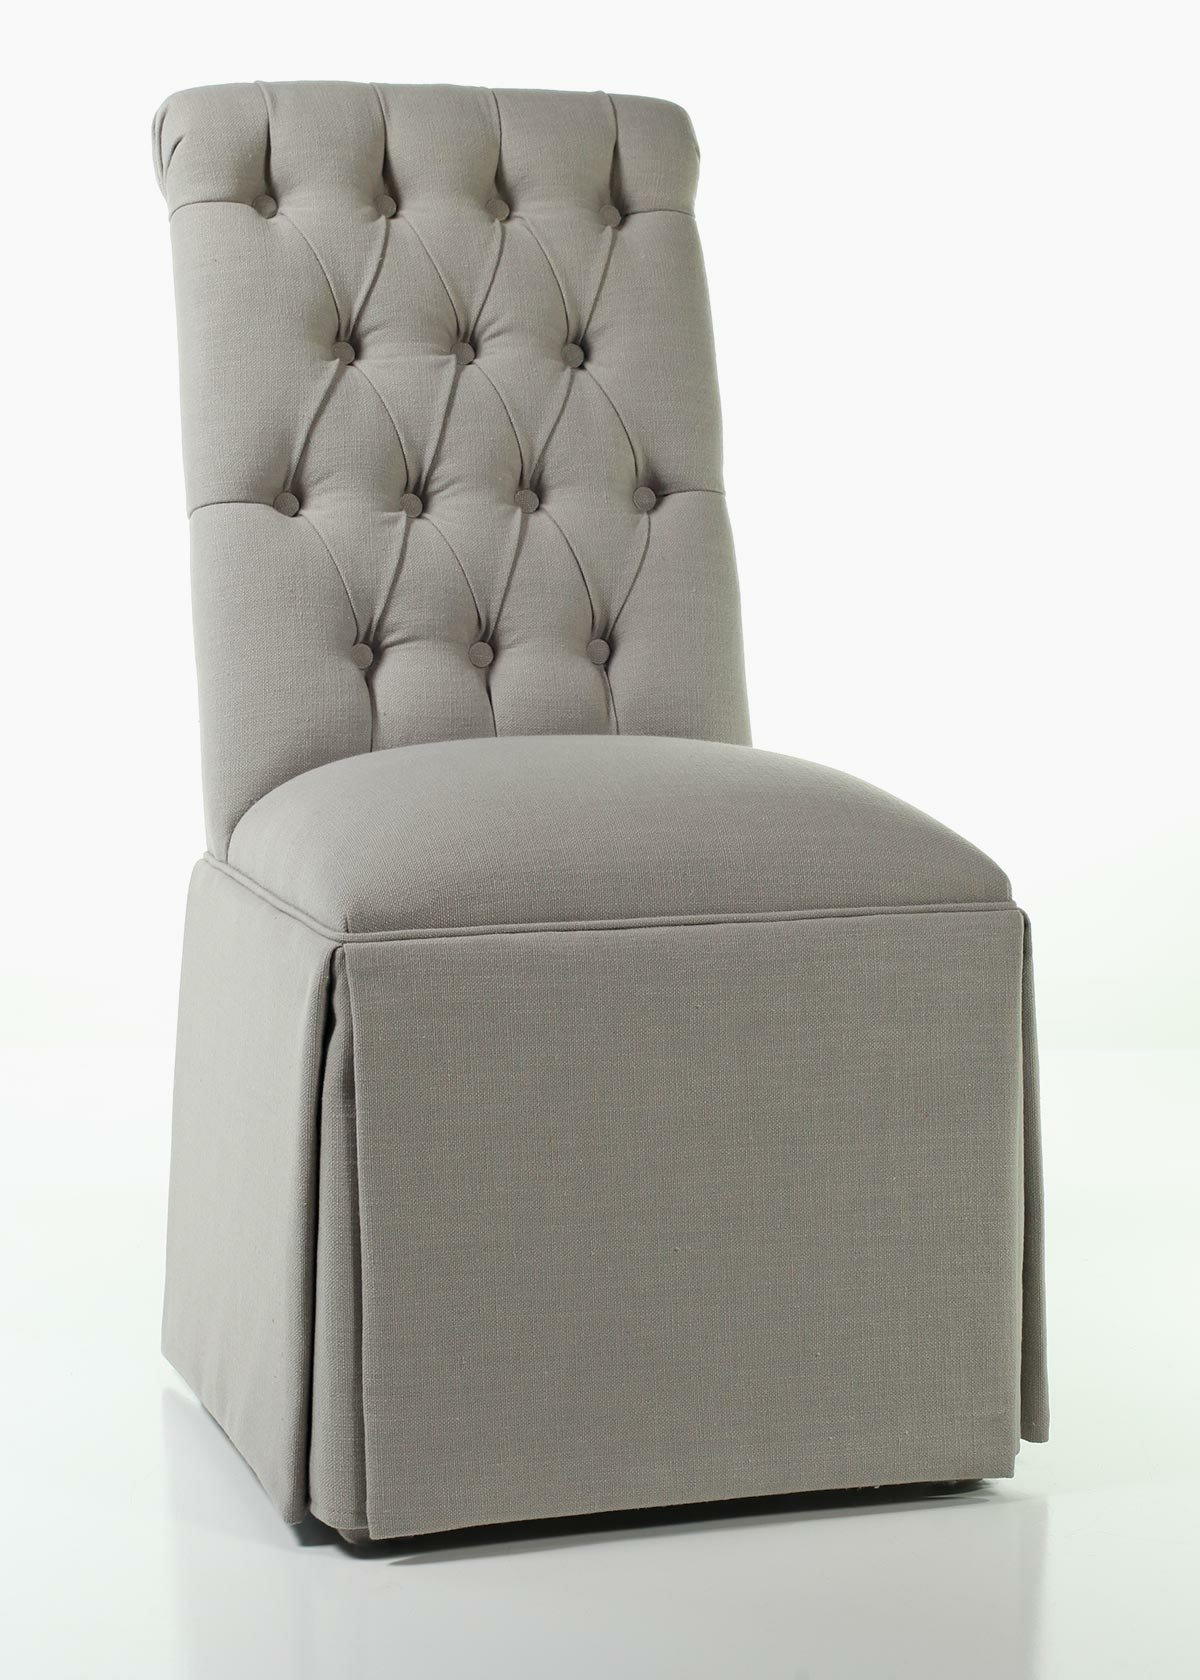 Exeter Side Chair For Latest Exeter Side Chairs (View 6 of 20)